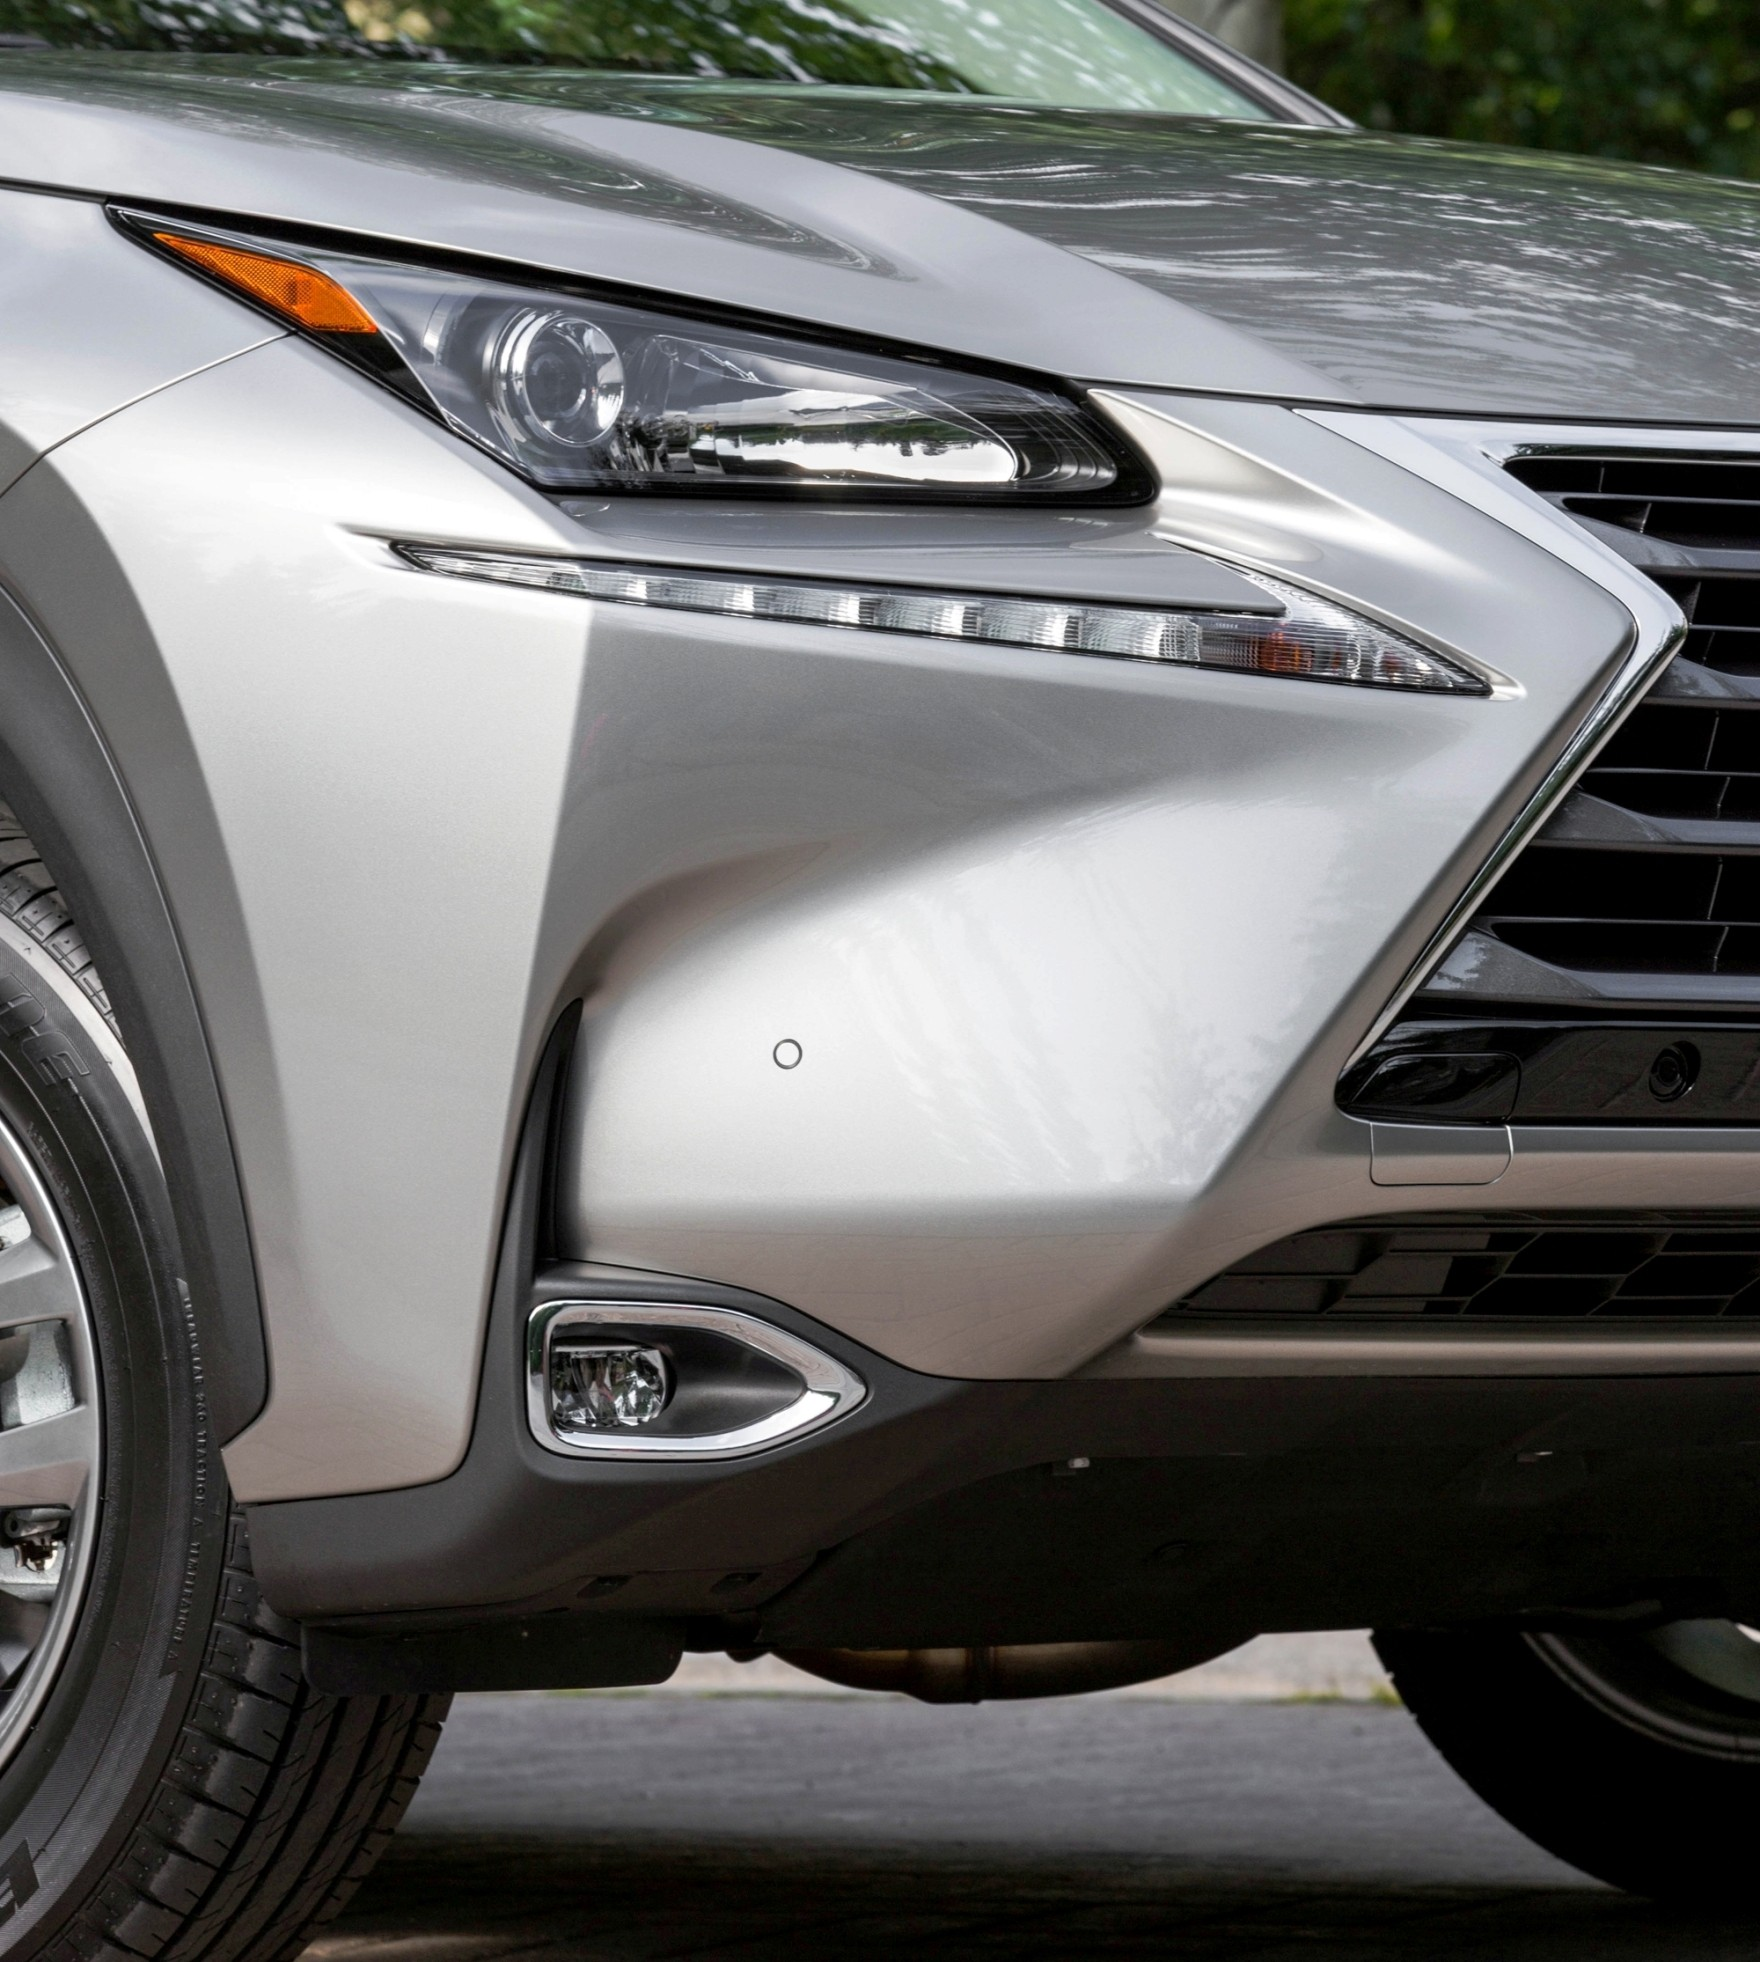 Lexus Nx300h Price: 2015 Lexus NX200t And NX300h Are Ultra-Modern Inside And Out